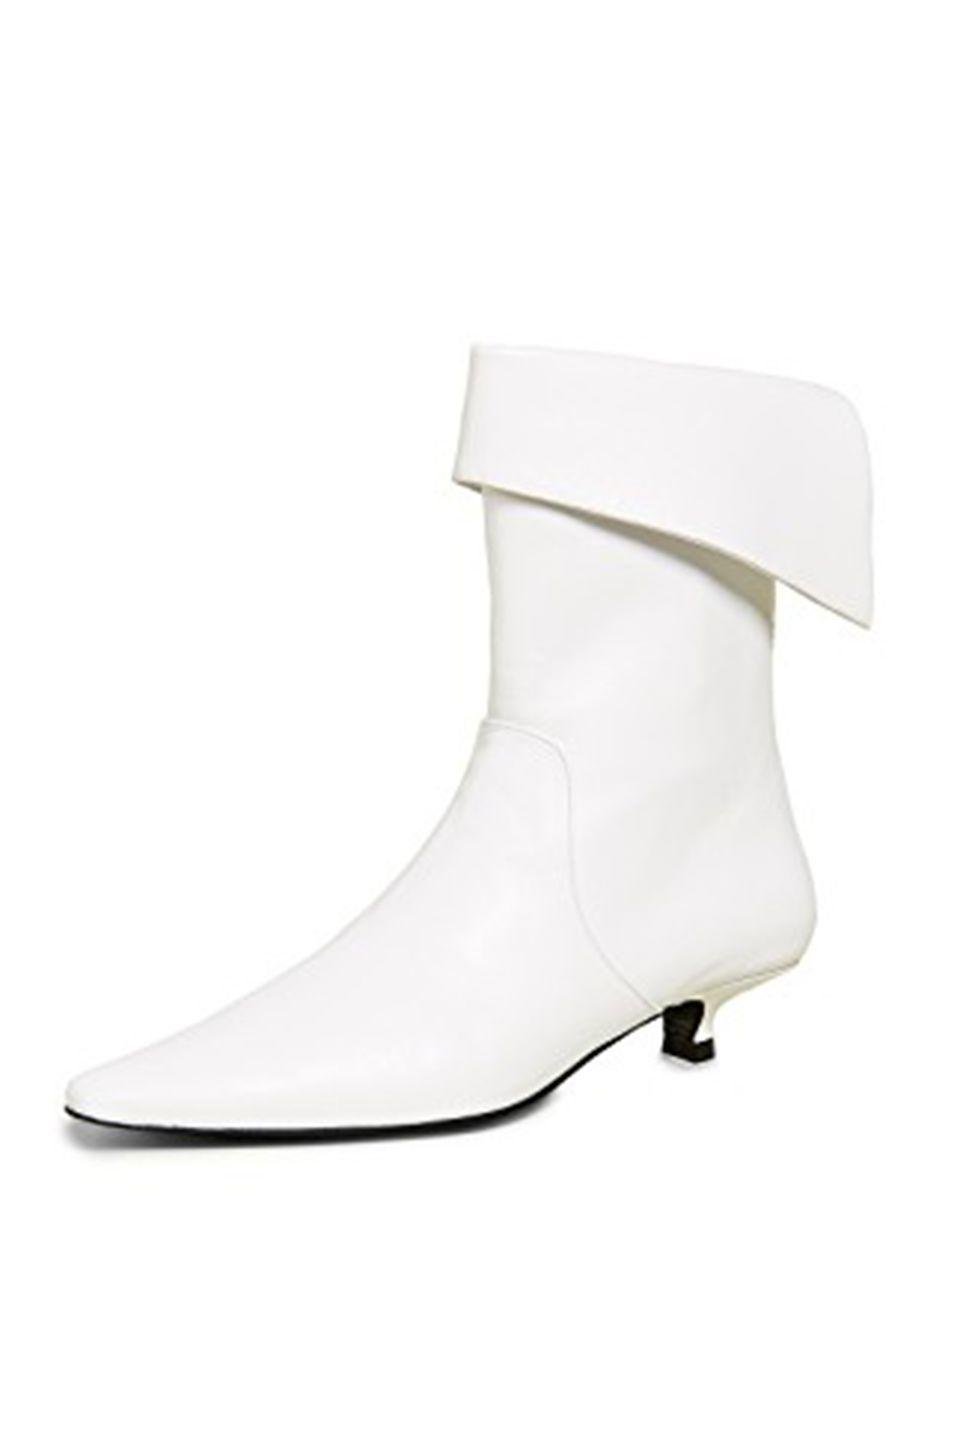 """<p><a class=""""link rapid-noclick-resp"""" href=""""https://go.redirectingat.com?id=127X1599956&url=https%3A%2F%2Fwww.shopbop.com%2Fcrucified-ankle-boot-dorateymur%2Fvp%2Fv%3D1%2F1508818951.htm%3Ffm%3Dsearch-viewall-shopbysize%26os%3Dfalse&sref=https%3A%2F%2Fwww.harpersbazaar.com%2Fuk%2Ffashion%2Fshows-trends%2Fg18195015%2Fbest-white-boots%2F"""" rel=""""nofollow noopener"""" target=""""_blank"""" data-ylk=""""slk:SHOP NOW"""">SHOP NOW</a></p><p>A lower heel has proven particularly popular with the street style set.</p><p>Leather boots, £538.35, Dorateymur at Shopbop</p>"""